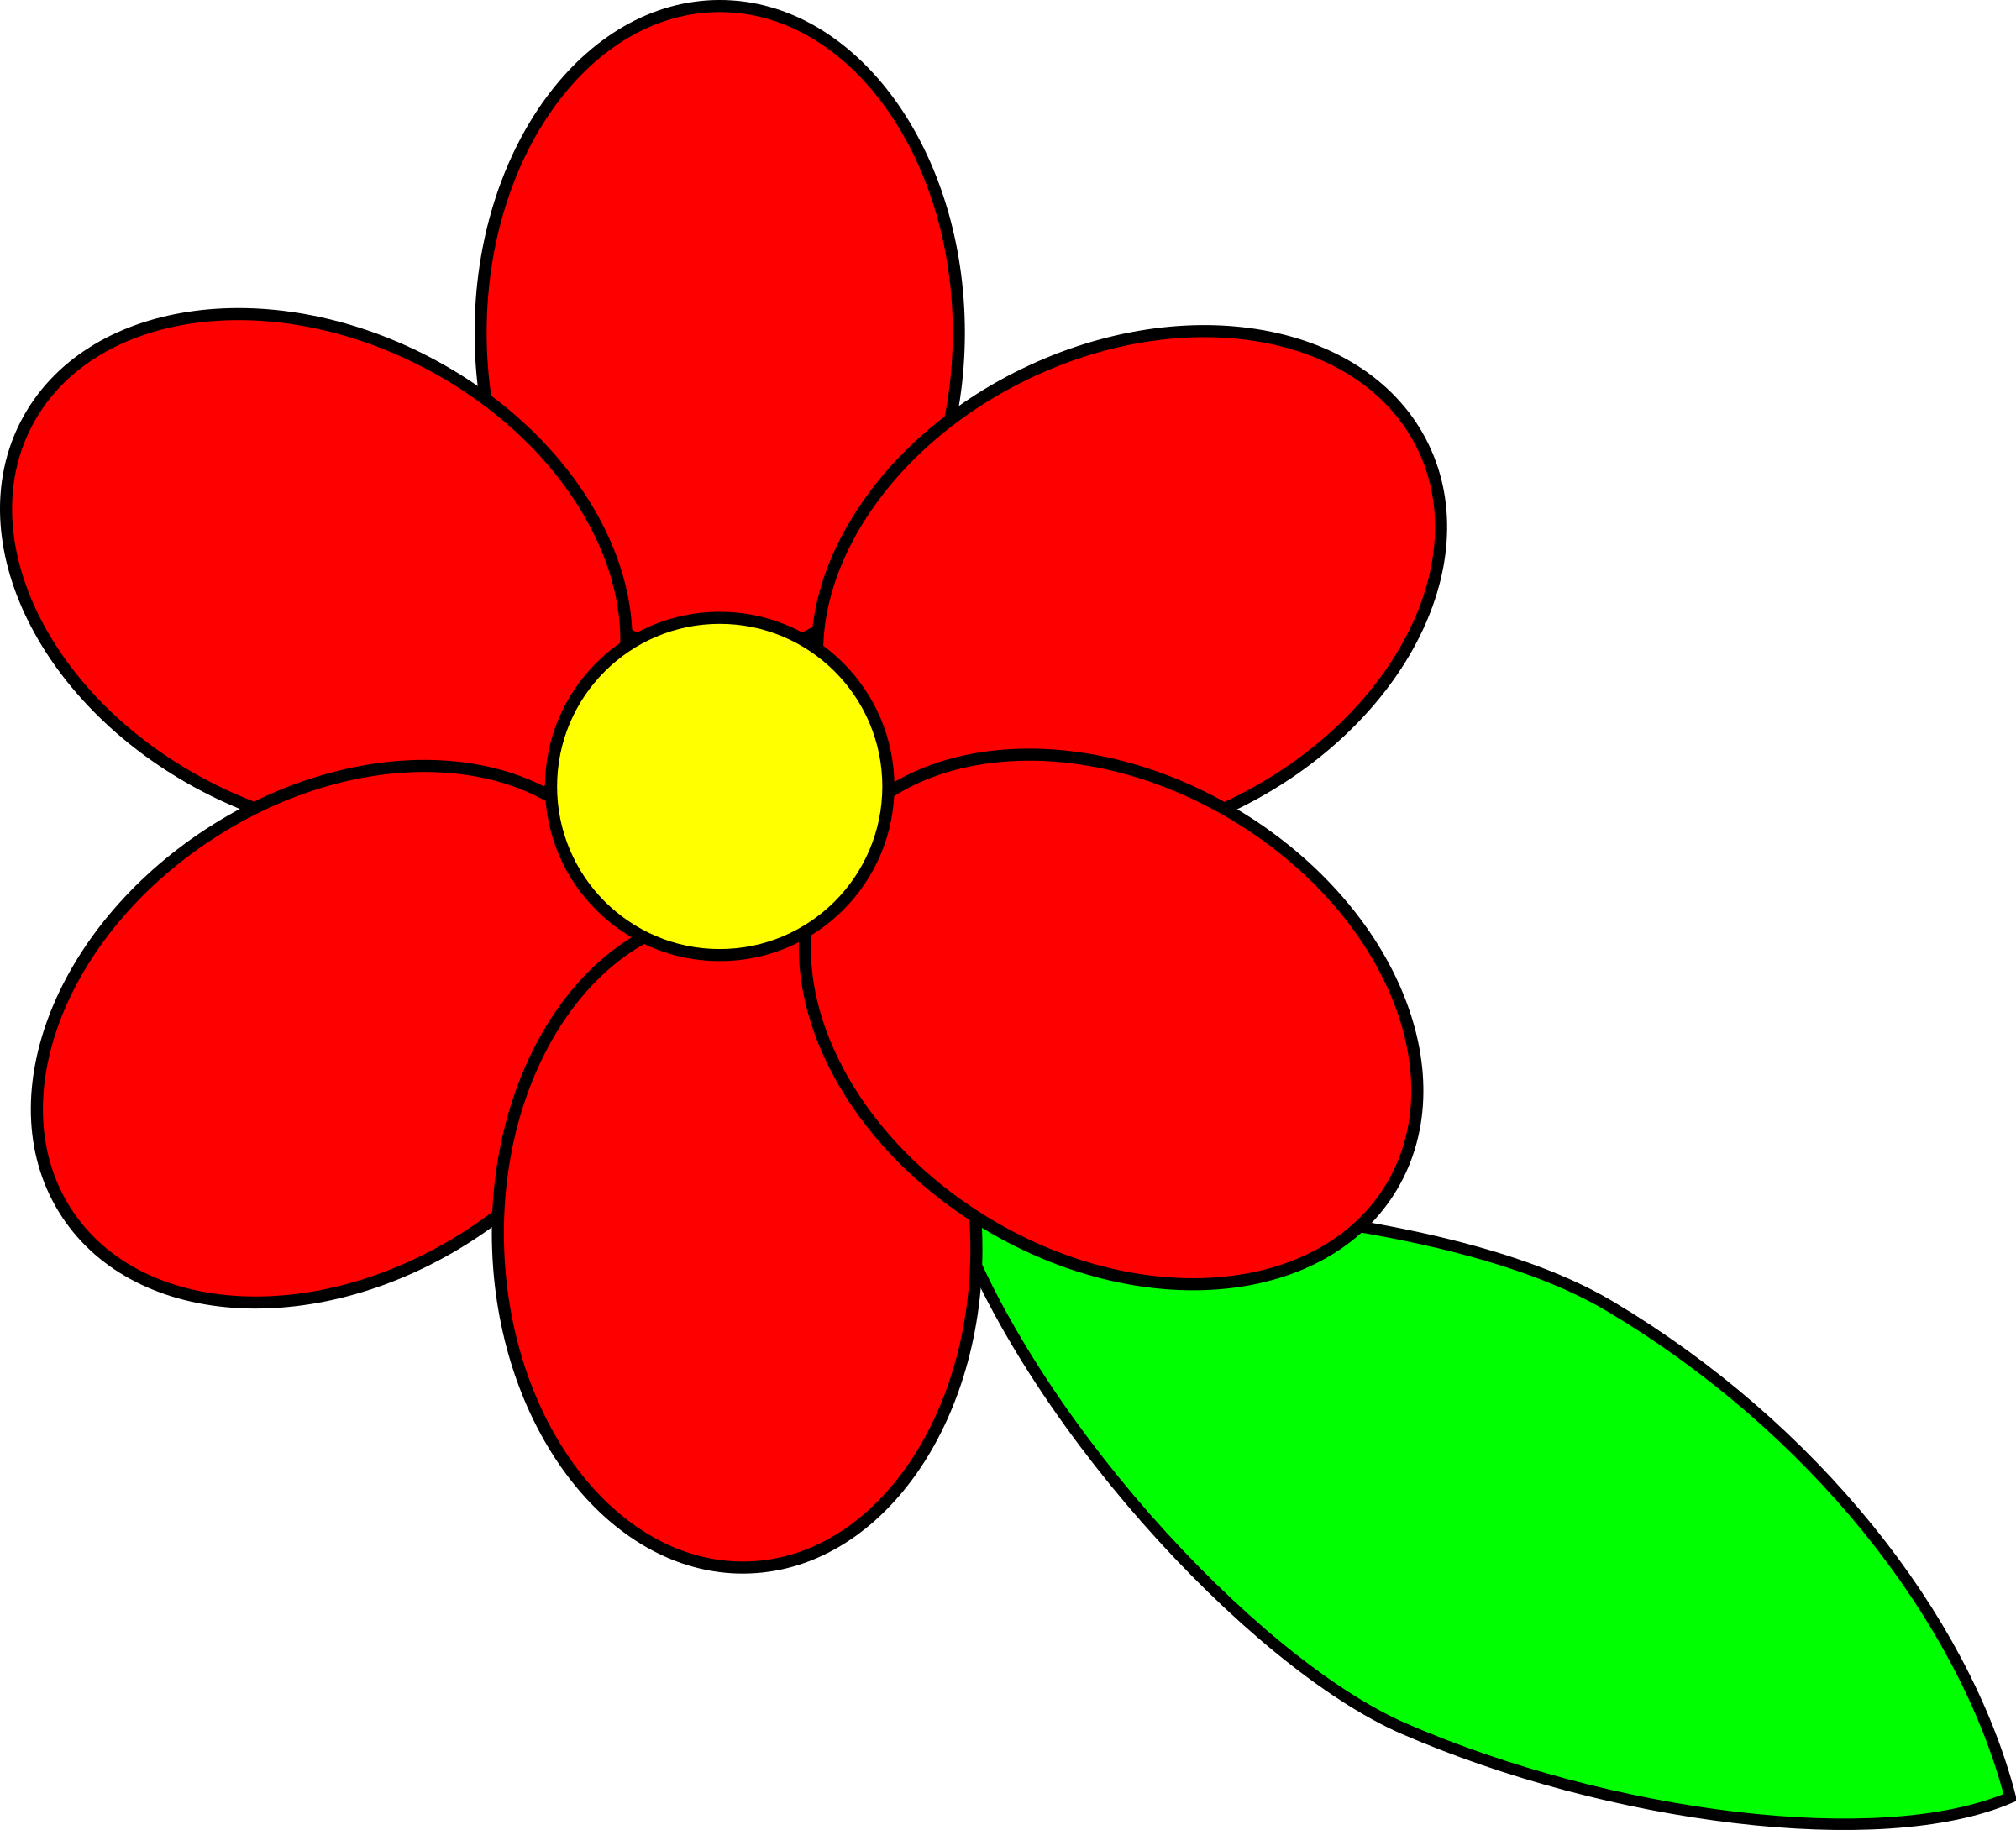 Red Flower clipart outline #1